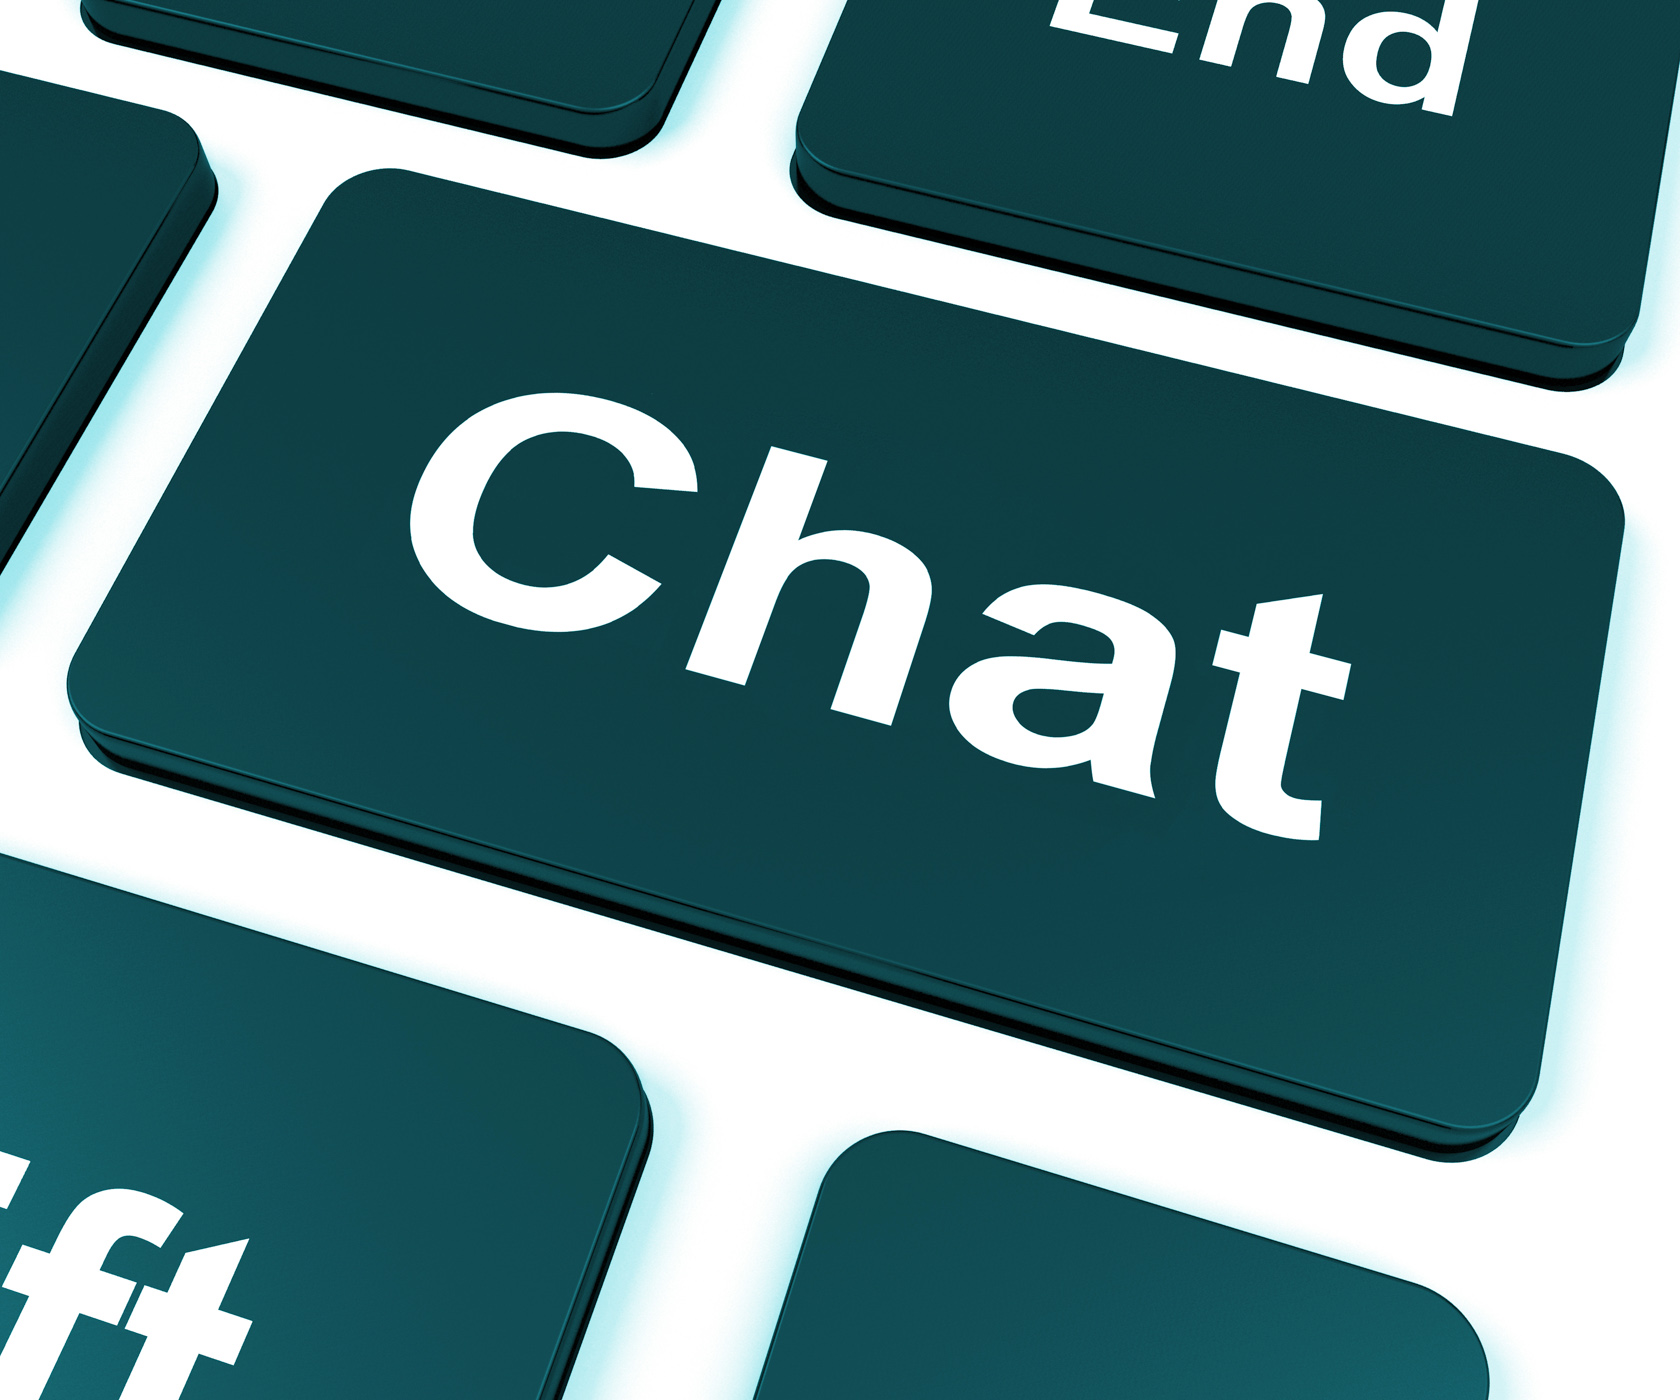 Chat Key Shows Talking Typing Or Texting, Call, Phone, Type, Text, HQ Photo